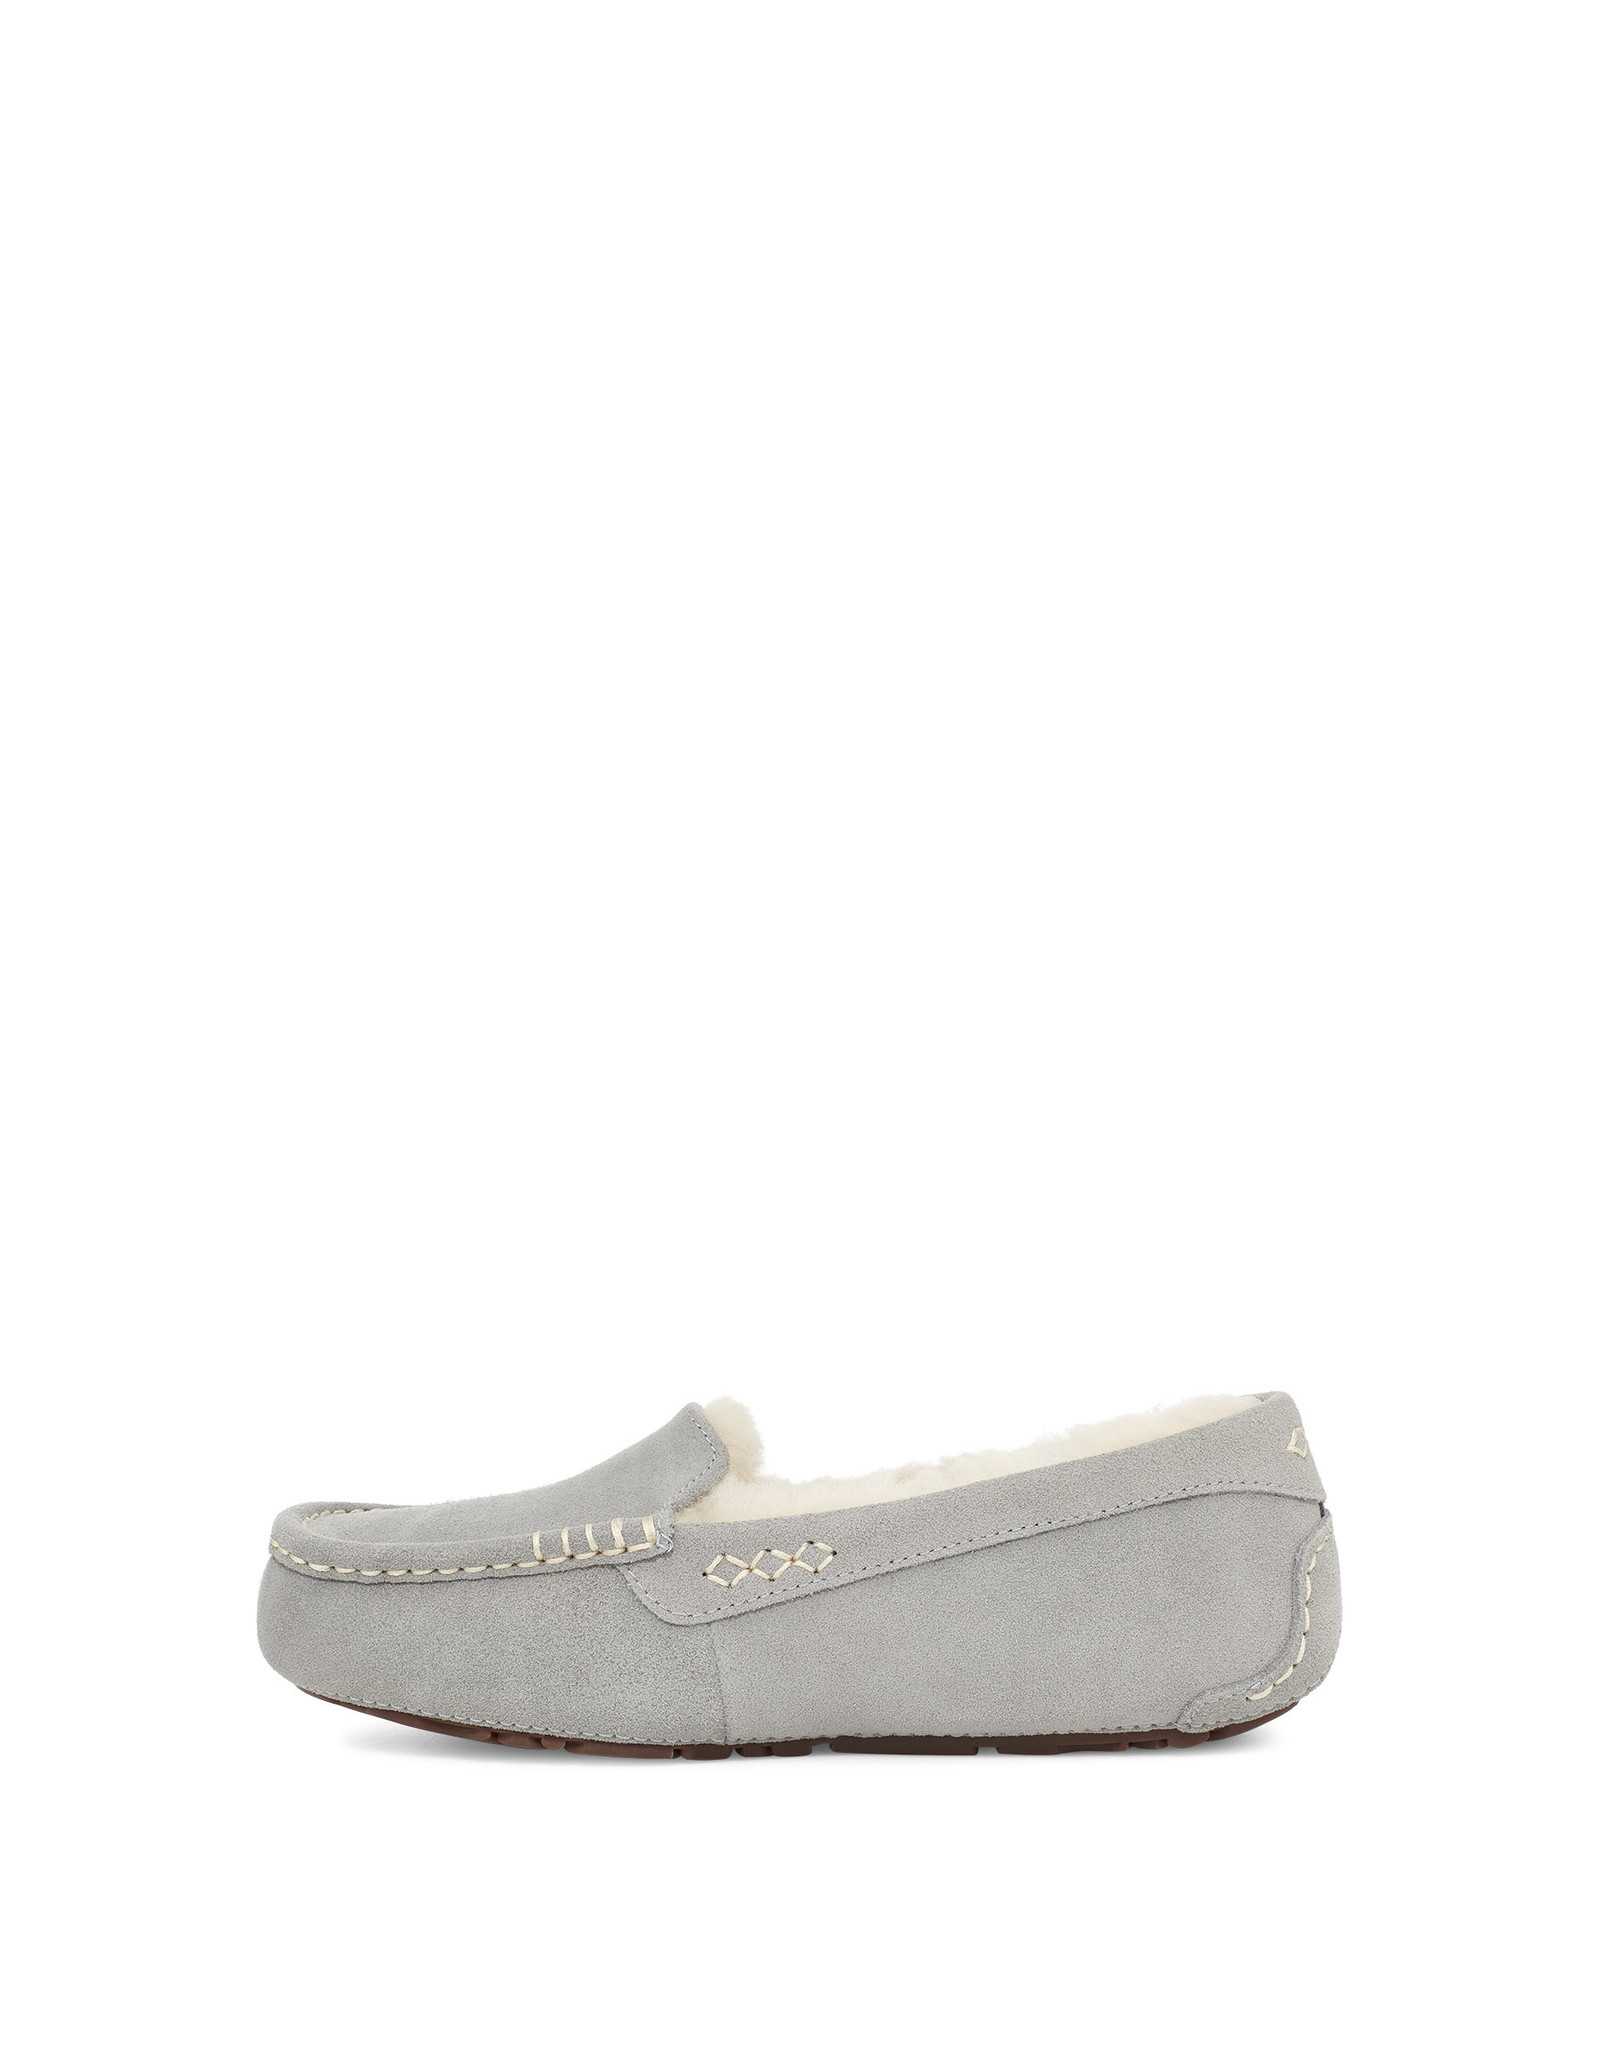 UGG WOMEN'S ANSLEY SLIPPER-LIGHT GREY